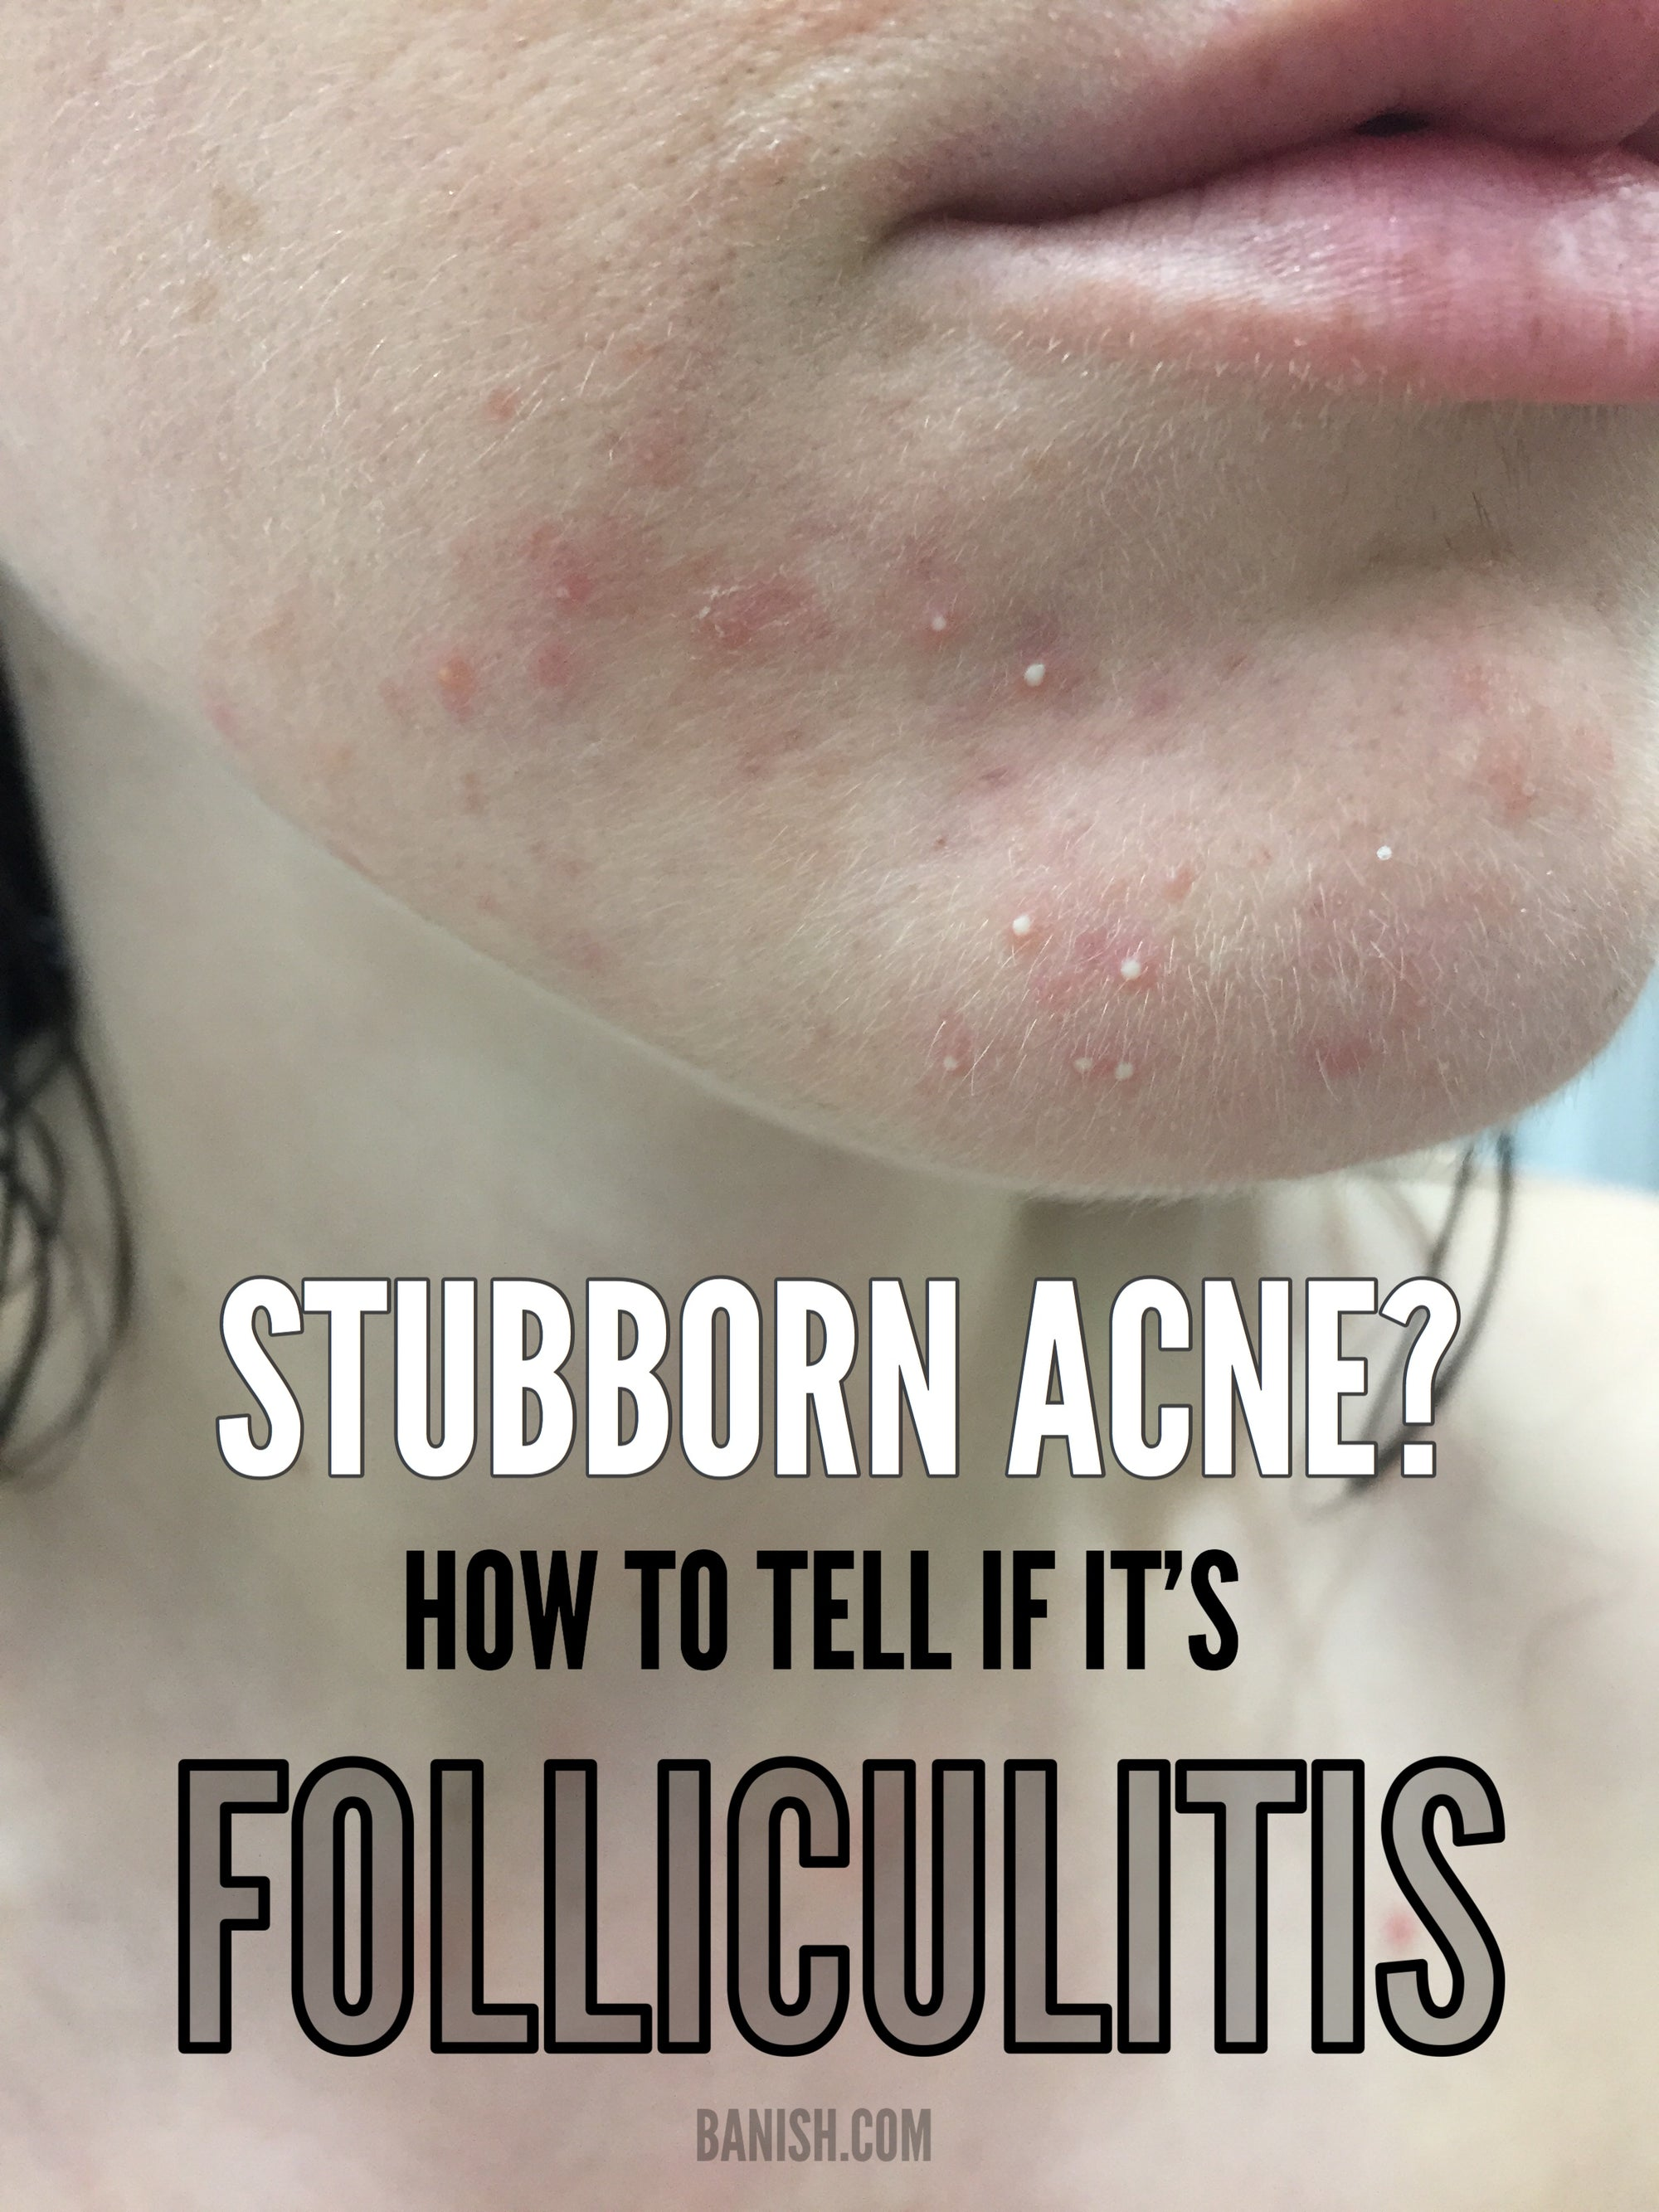 HAVE STUBBORN ACNE? HOW TO TELL IF IT'S FOLLICULITIS